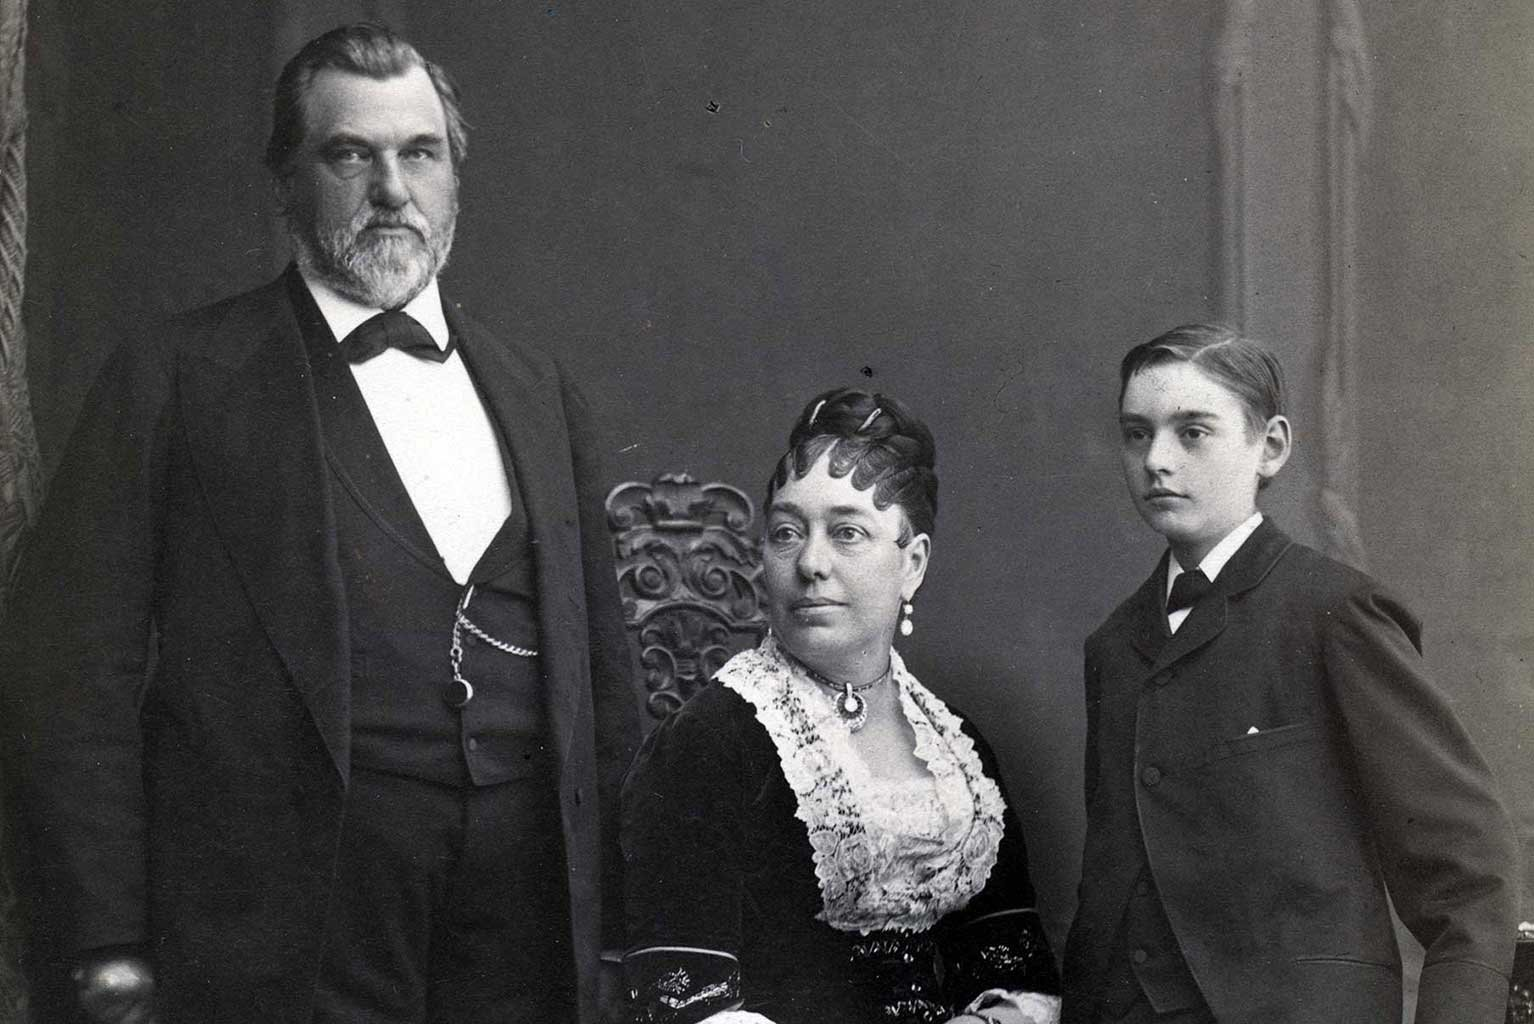 A family portrait before Leland Stanford Jr.'s death in 1884.